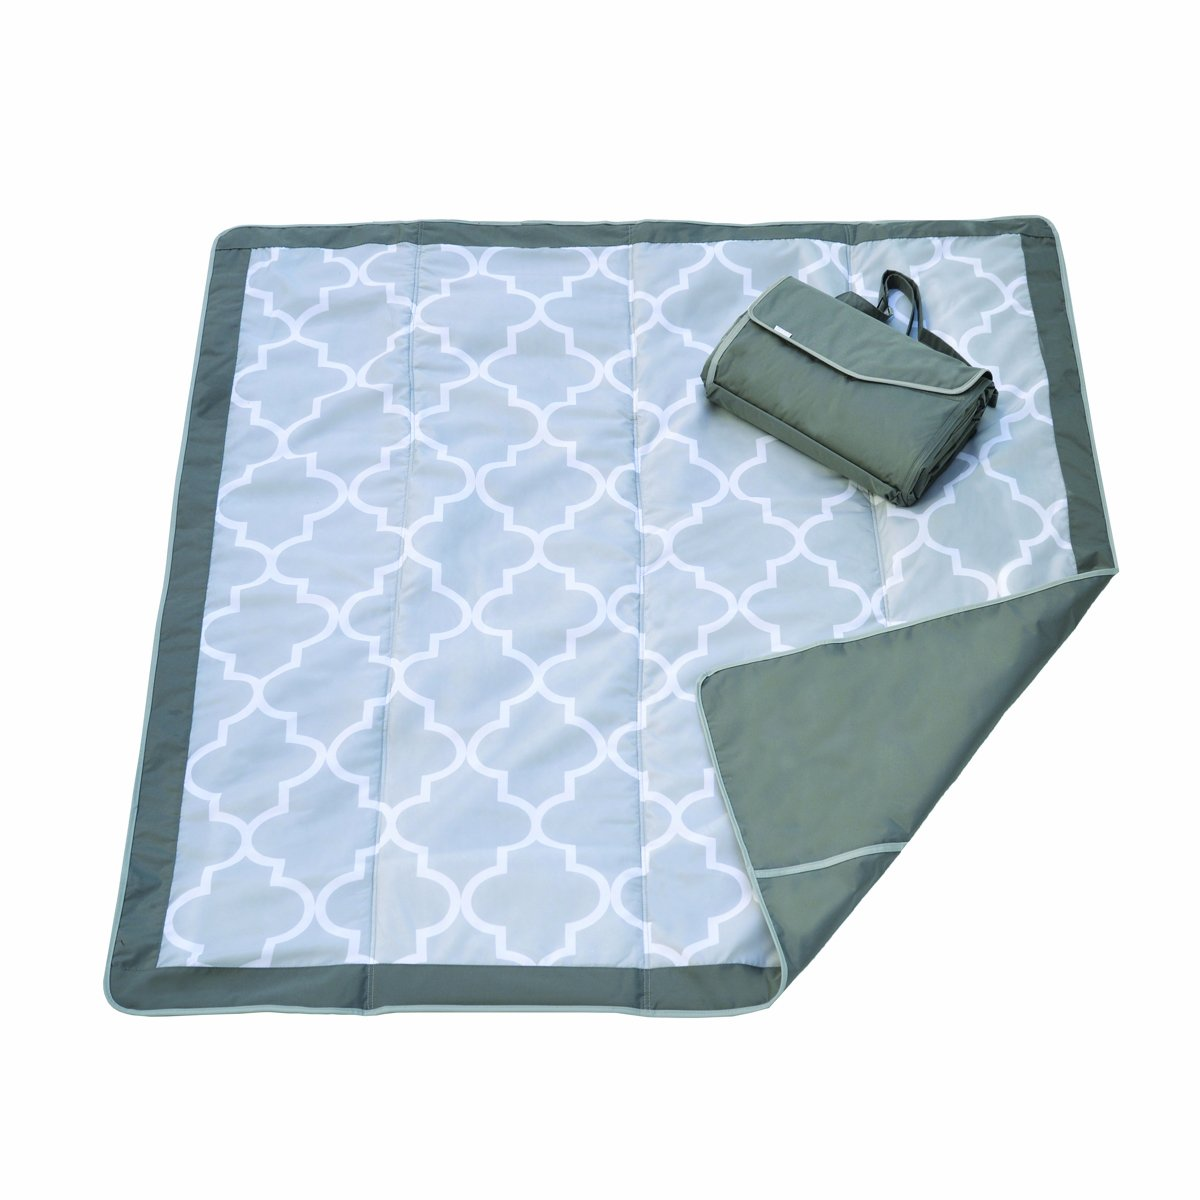 Jj Cole Outdoor Blanket, 5'X'5 Stone Arbor